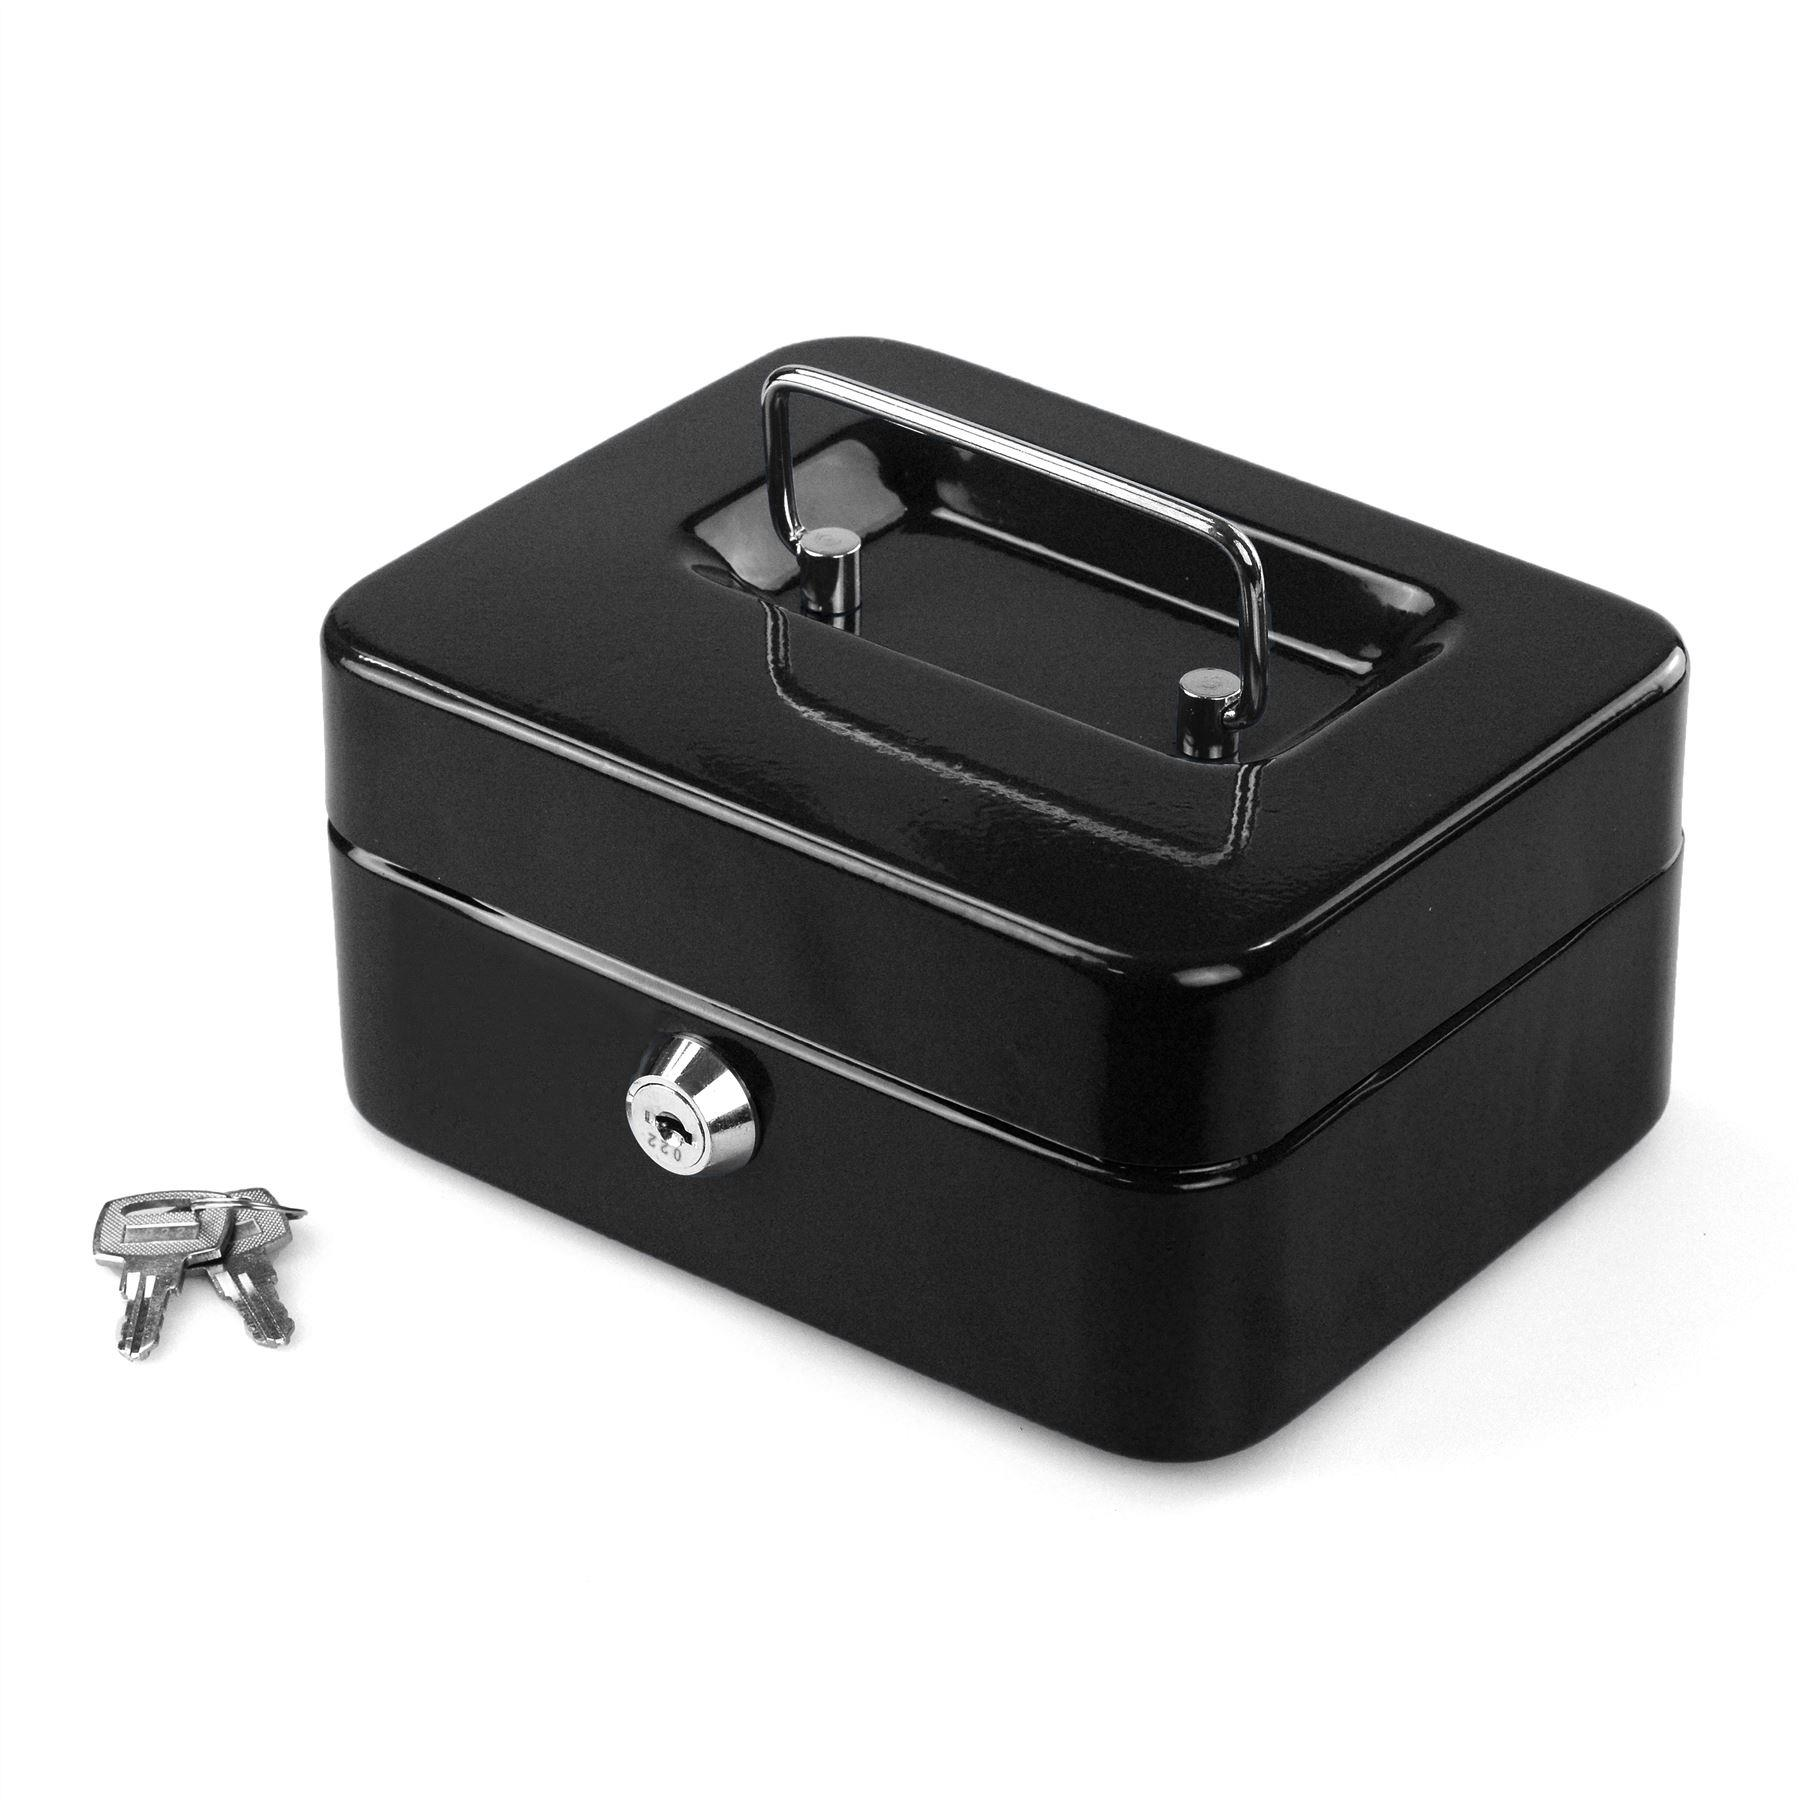 Petty-Cash-Safety-Deposit-Box-Metal-Security-Steel-Money-Bank-Coin-Tray-holder thumbnail 4